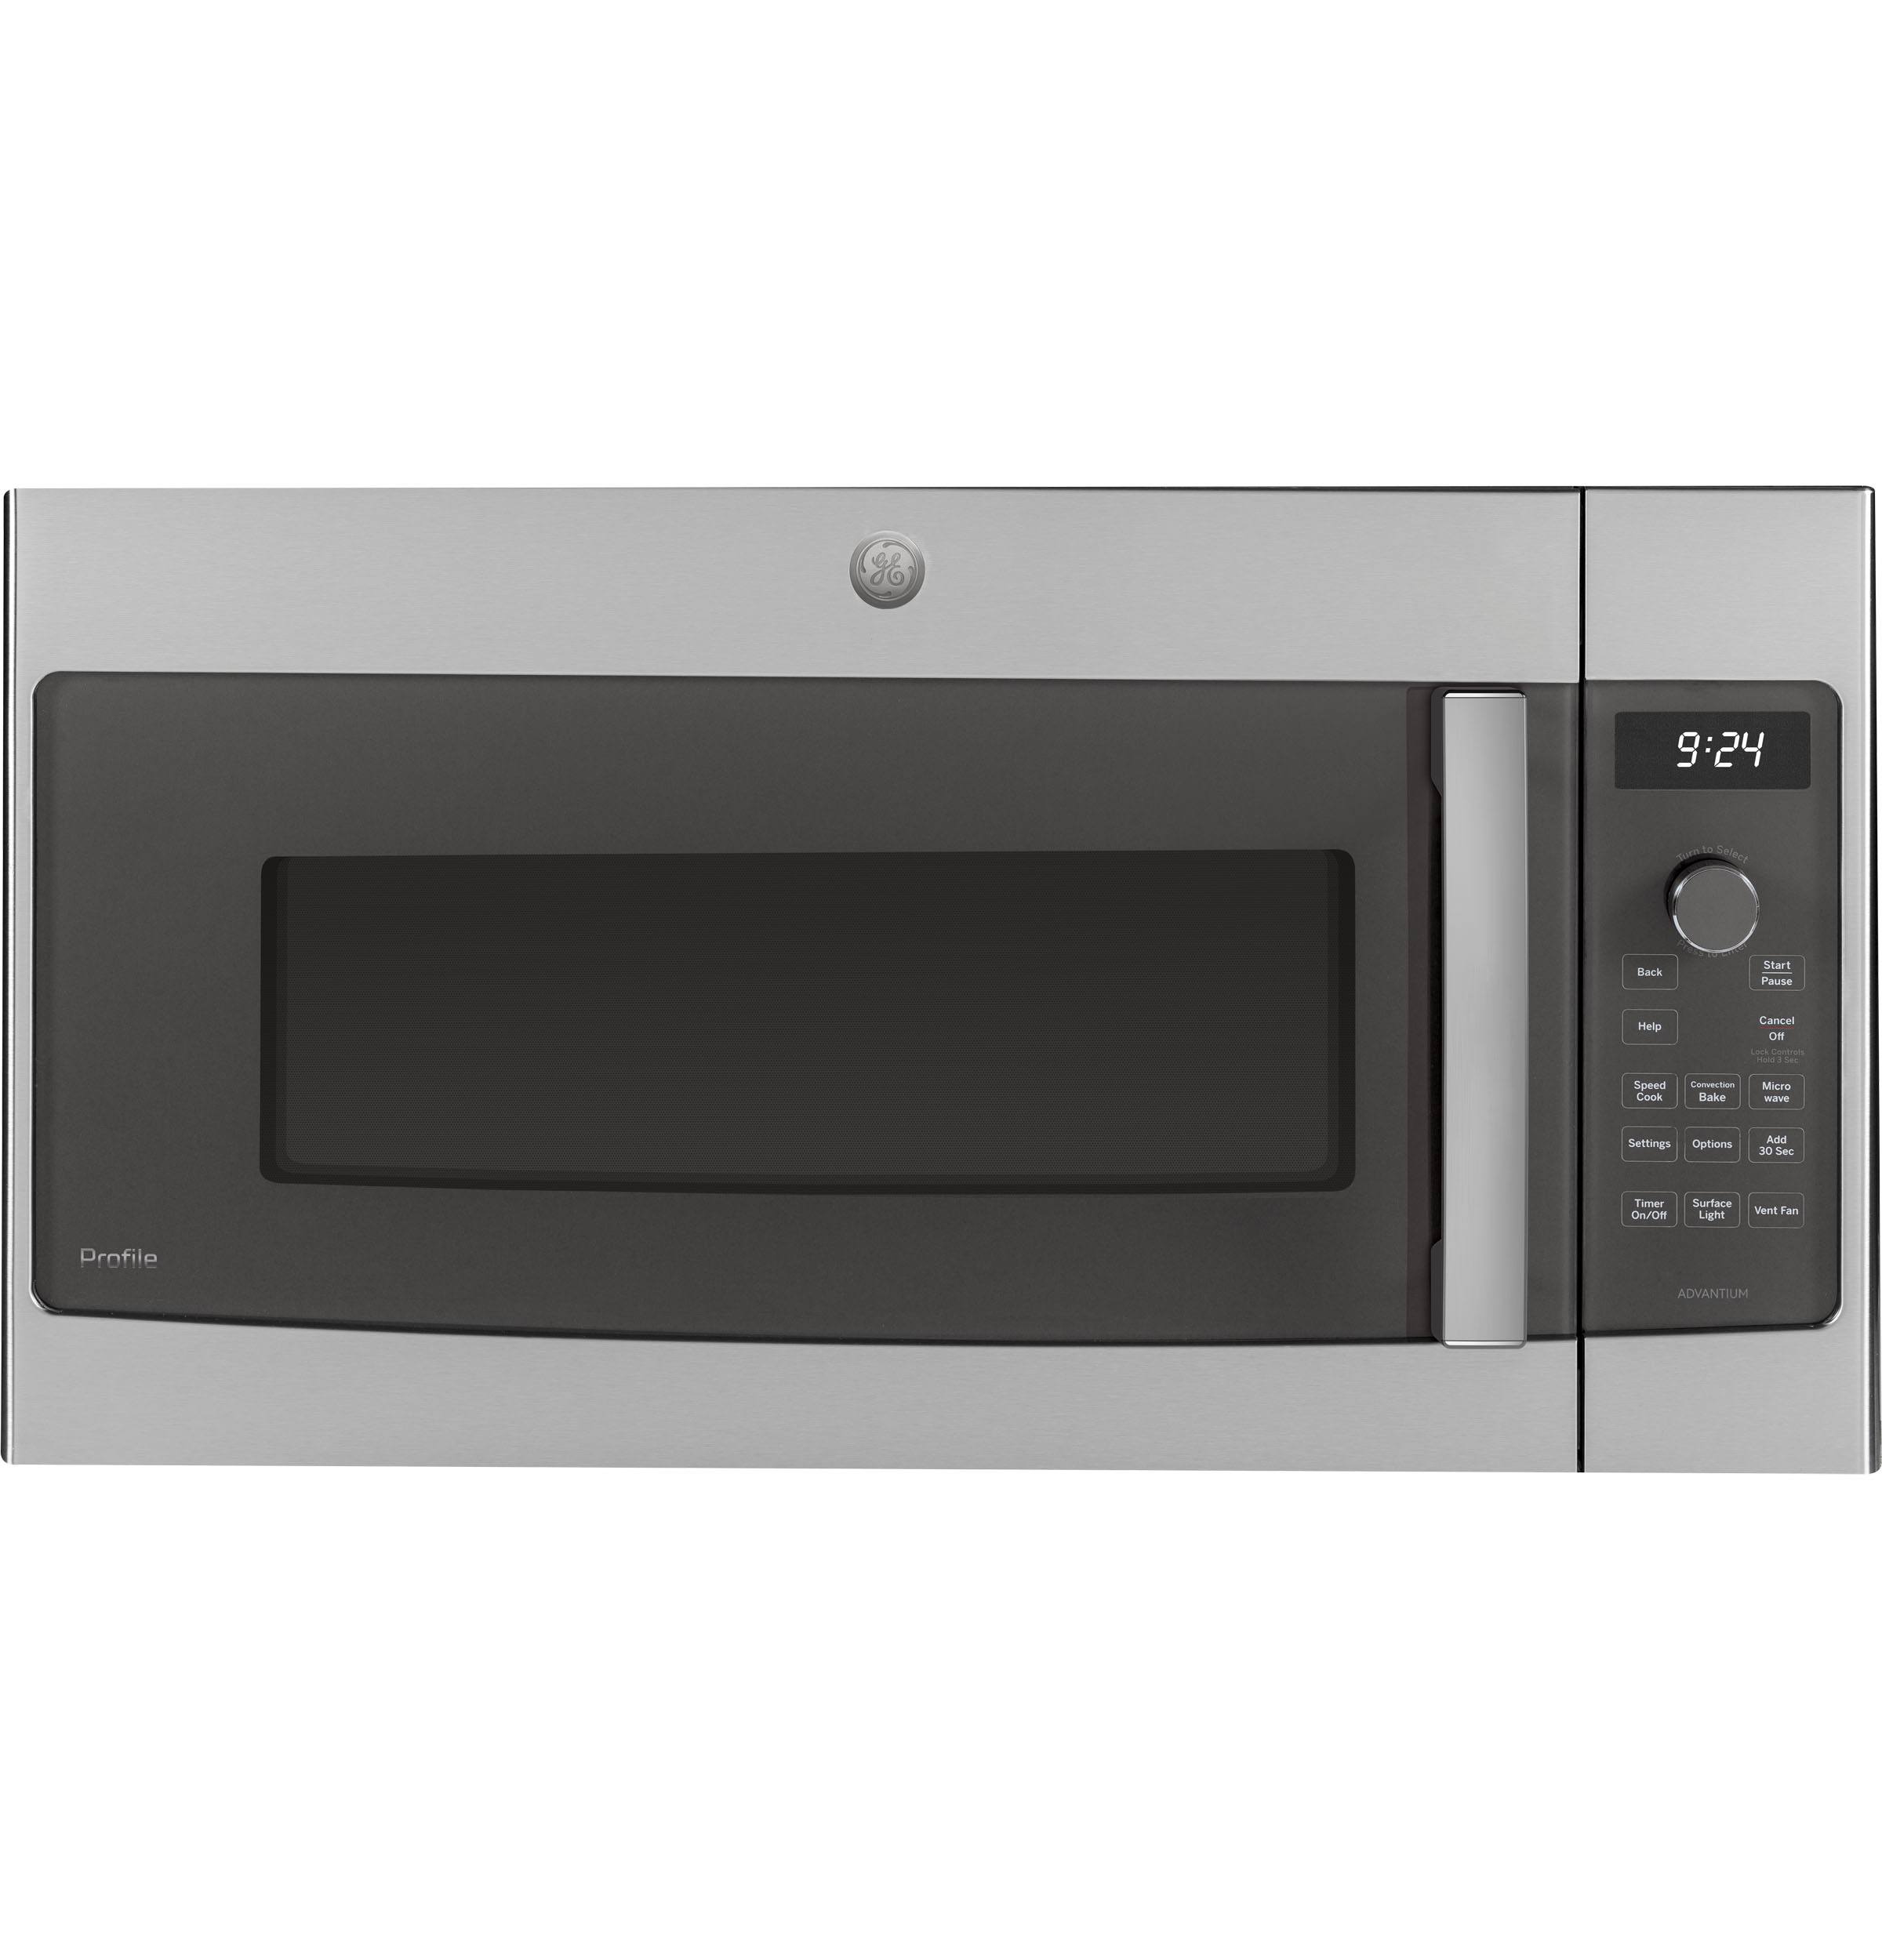 GE Profile GE Profile™ Over-the-Range Oven with Advantium® Technology